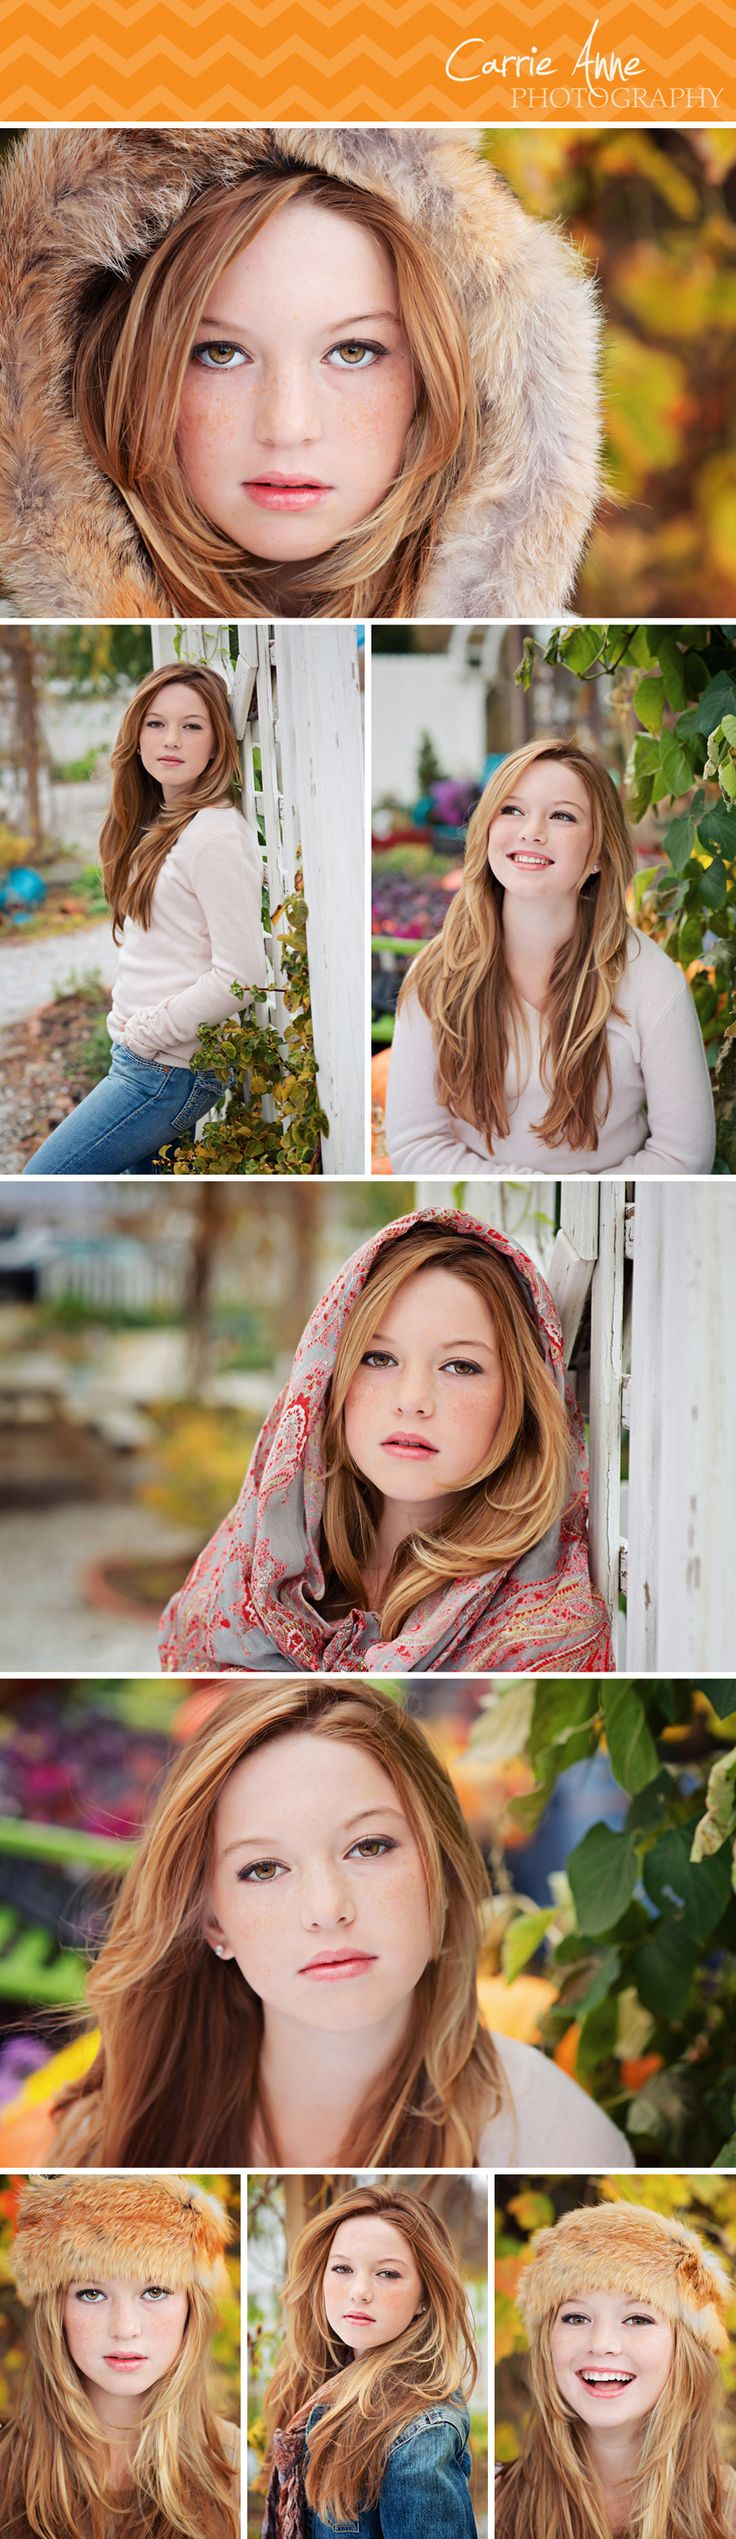 grand rapids christian girl personals Meet christian singles in grand rapids, michigan online & connect in the chat rooms dhu is a 100% free dating site to find single christians.